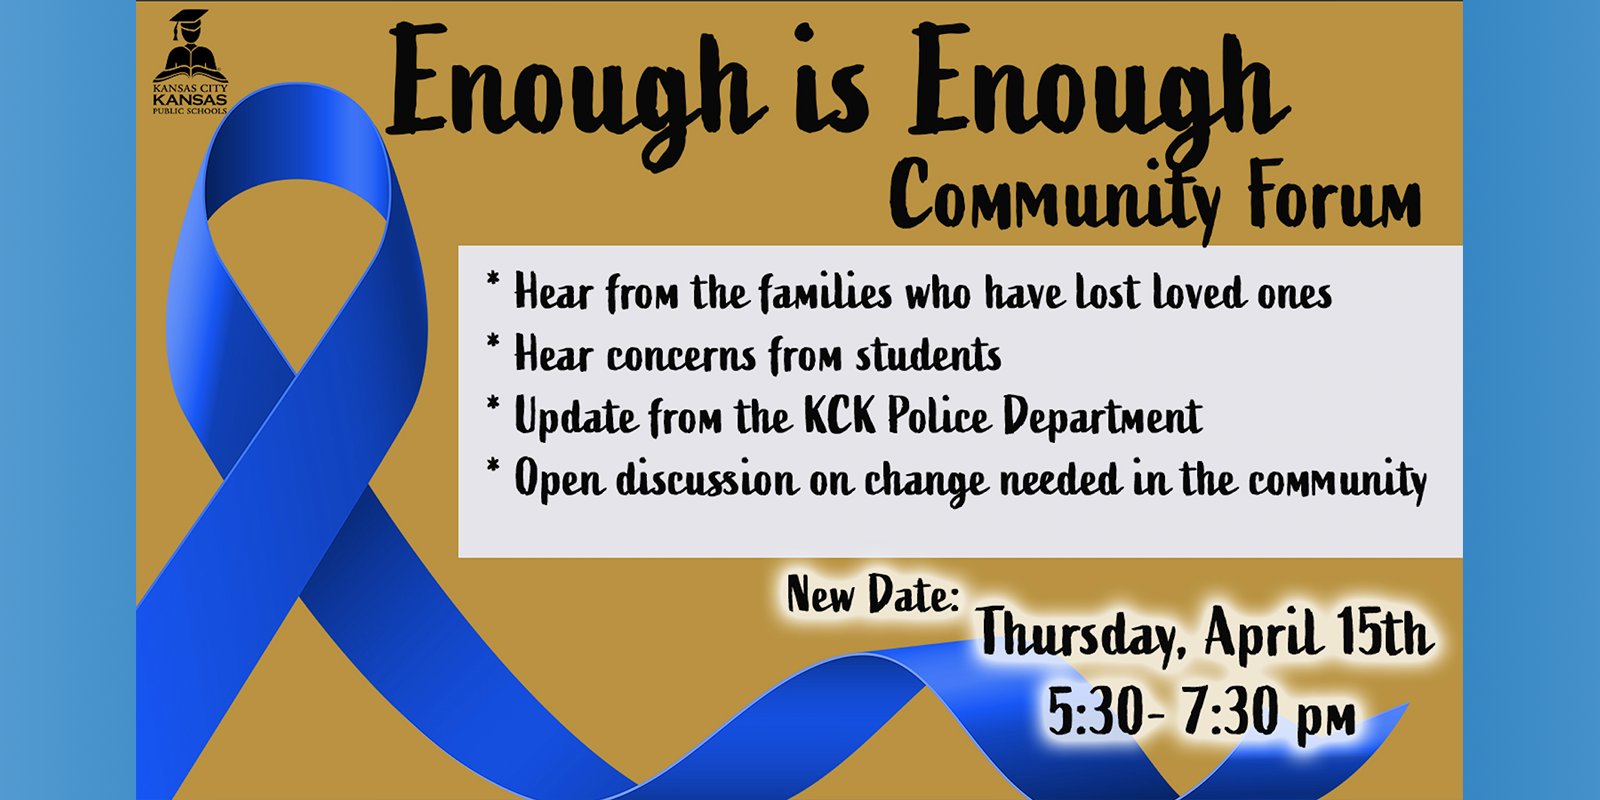 Next Community Forum on April 15